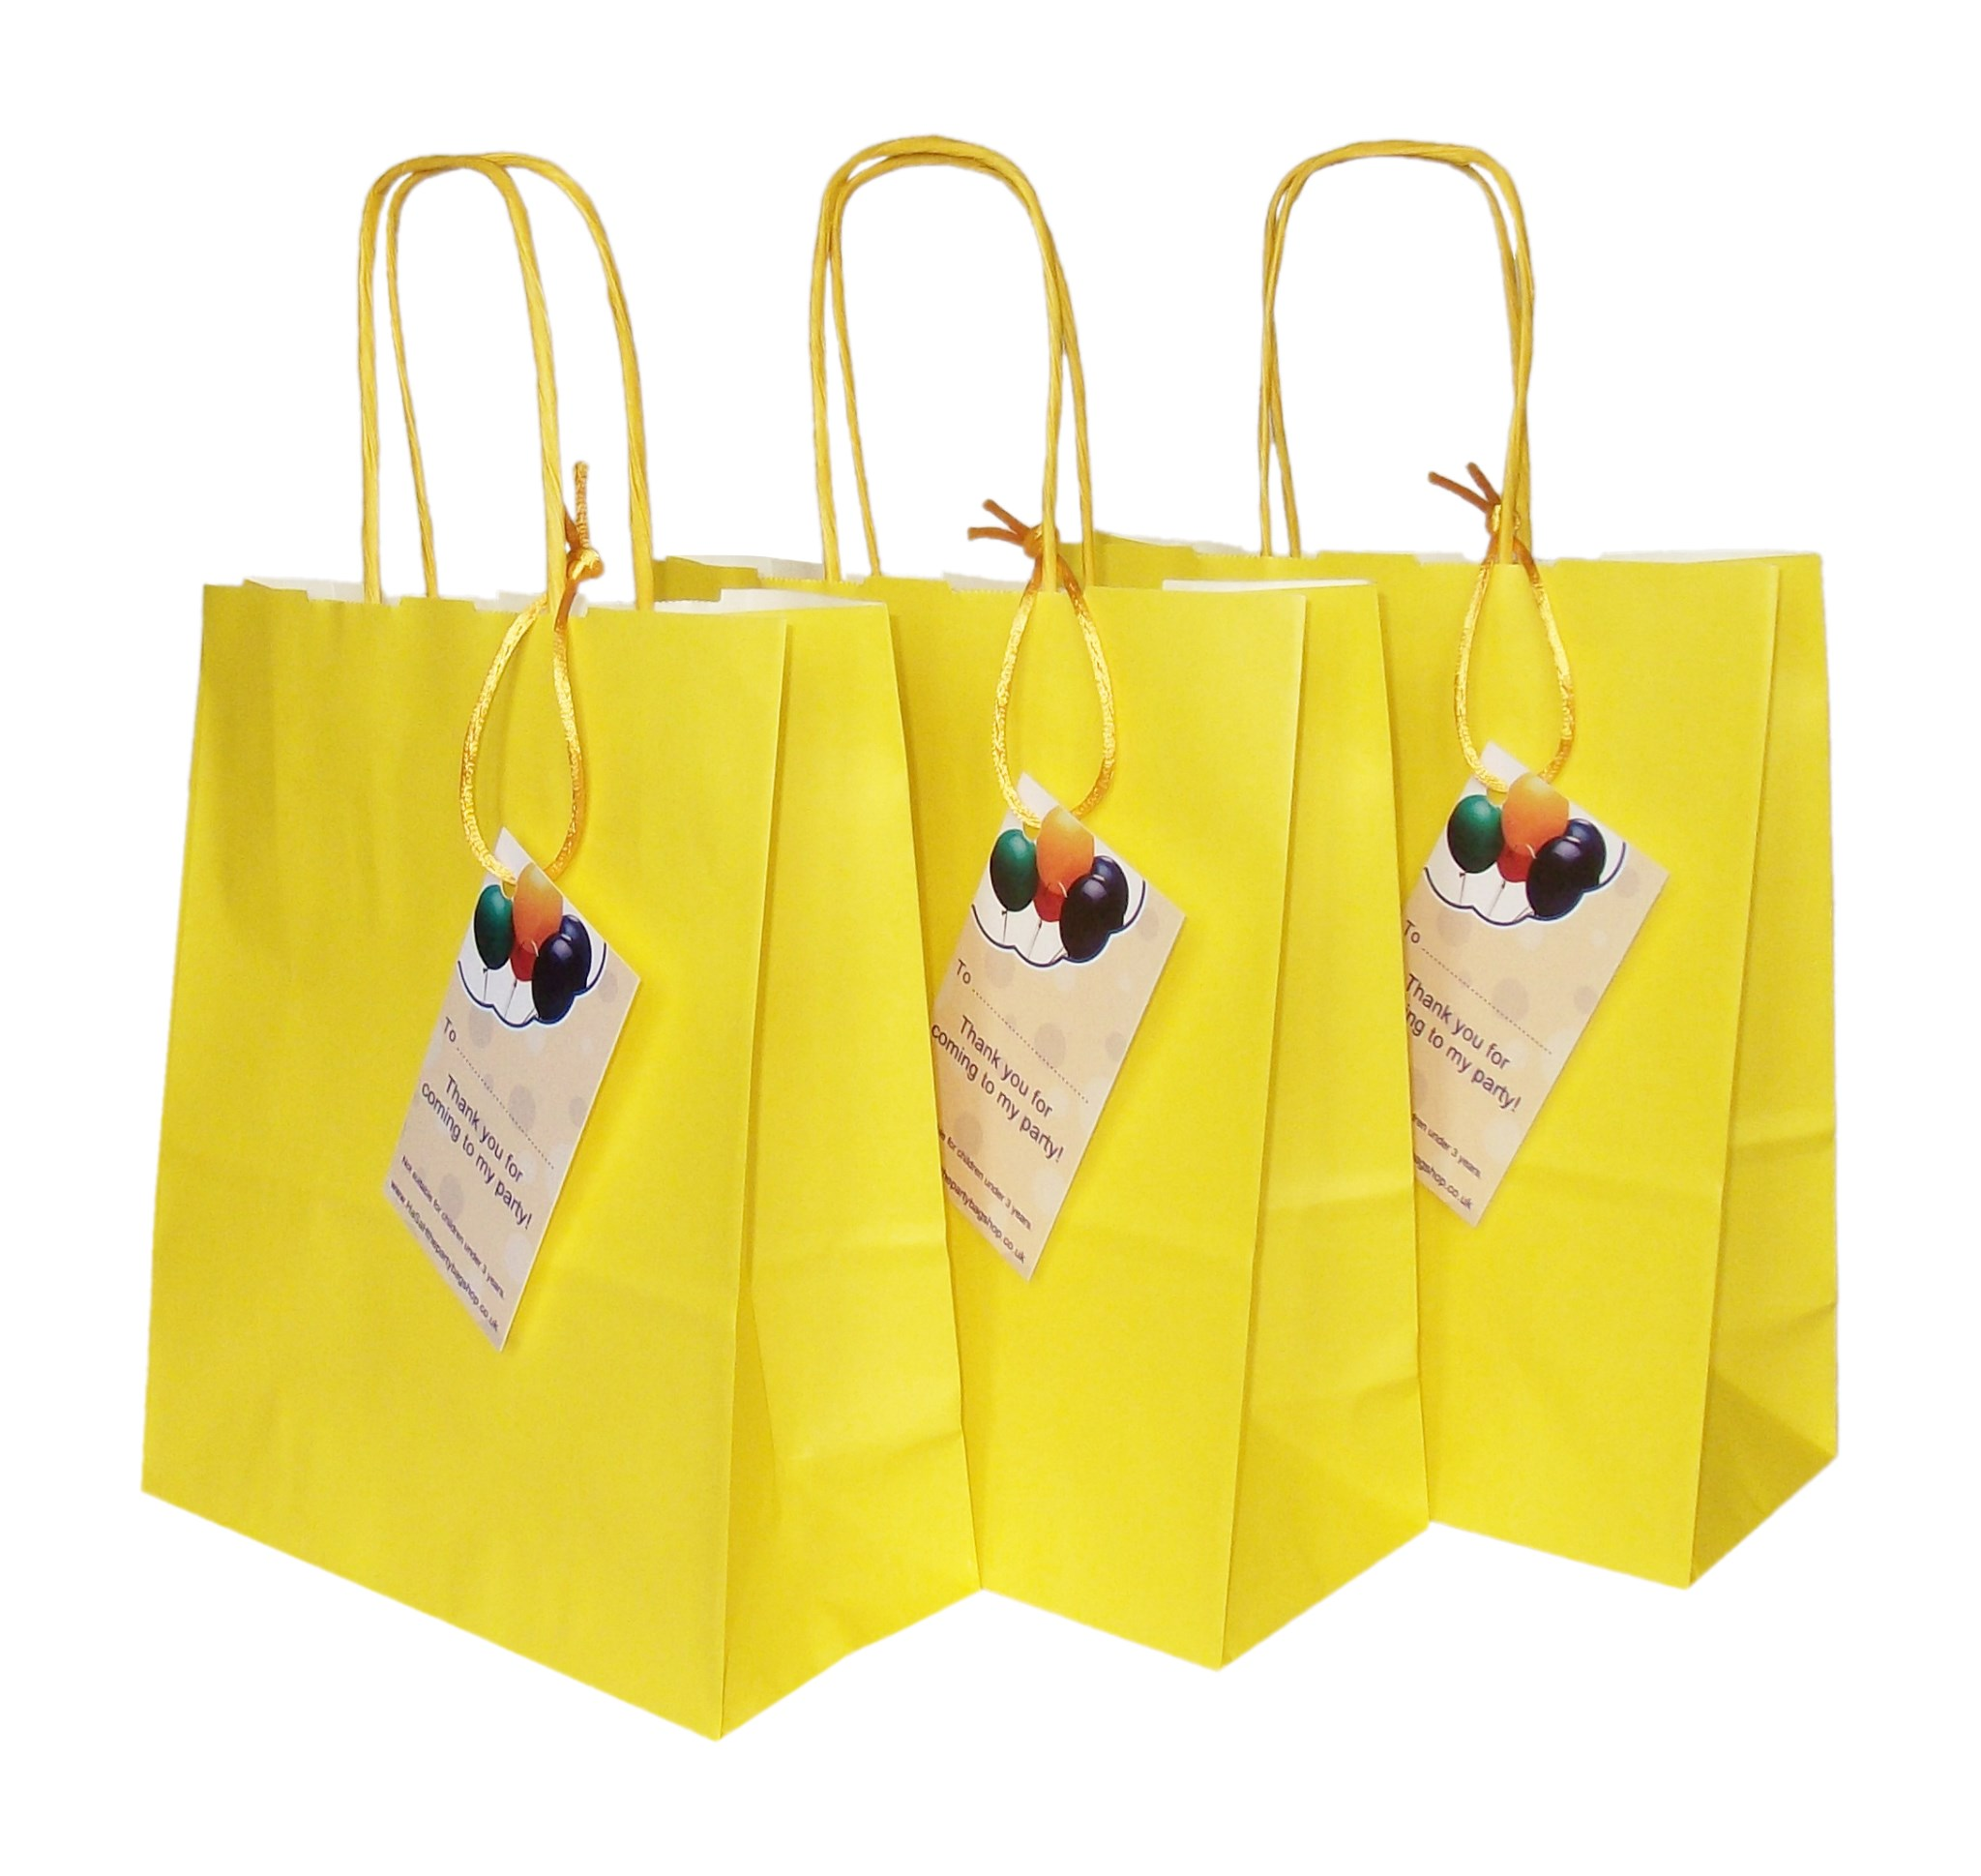 Paper bag yellow - Luxury Yellow Paper Party Bags With Handles And Thank You Label